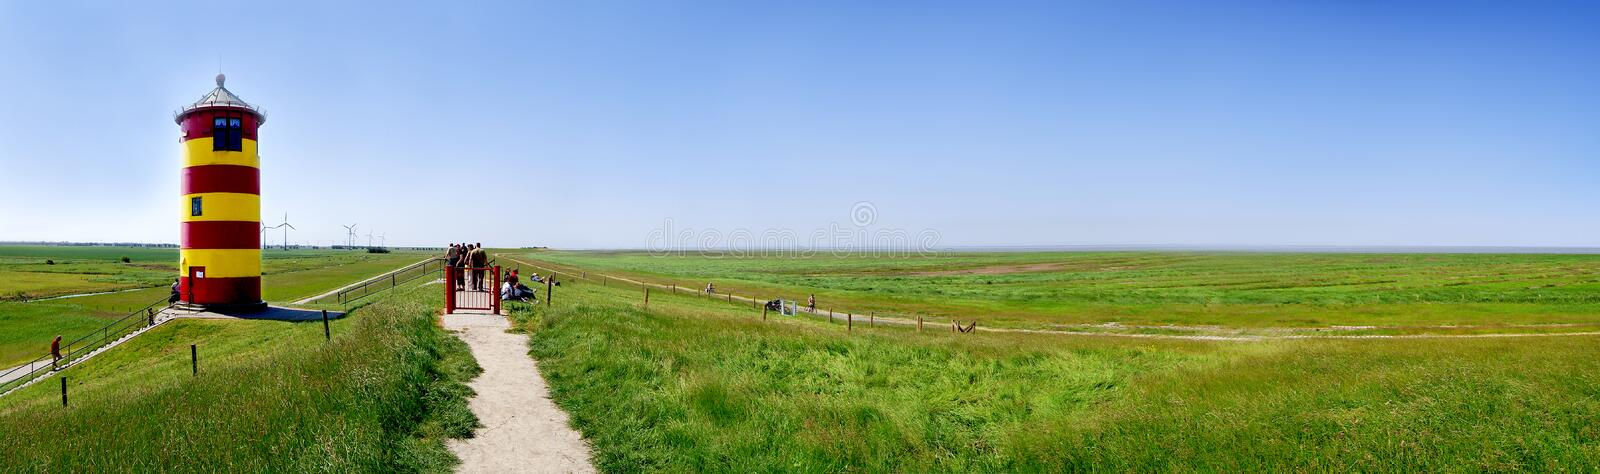 The lighthouse from pilsum northern germany royalty free stock photo